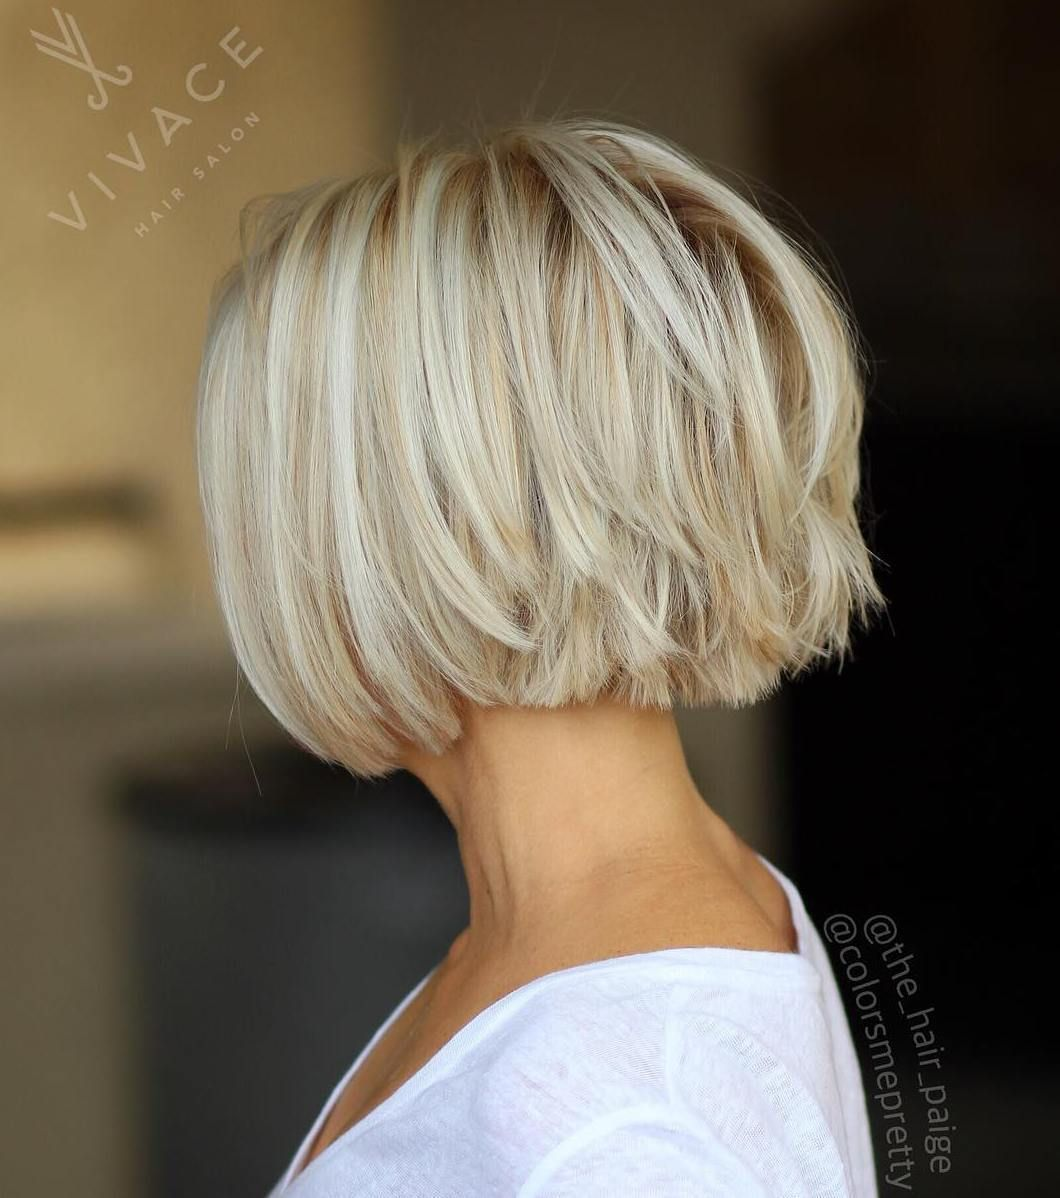 100 Mind Blowing Short Hairstyles For Fine Hair Korte Kapsels Voor Fijn Haar Kapsels Kort Trendy Kapsel